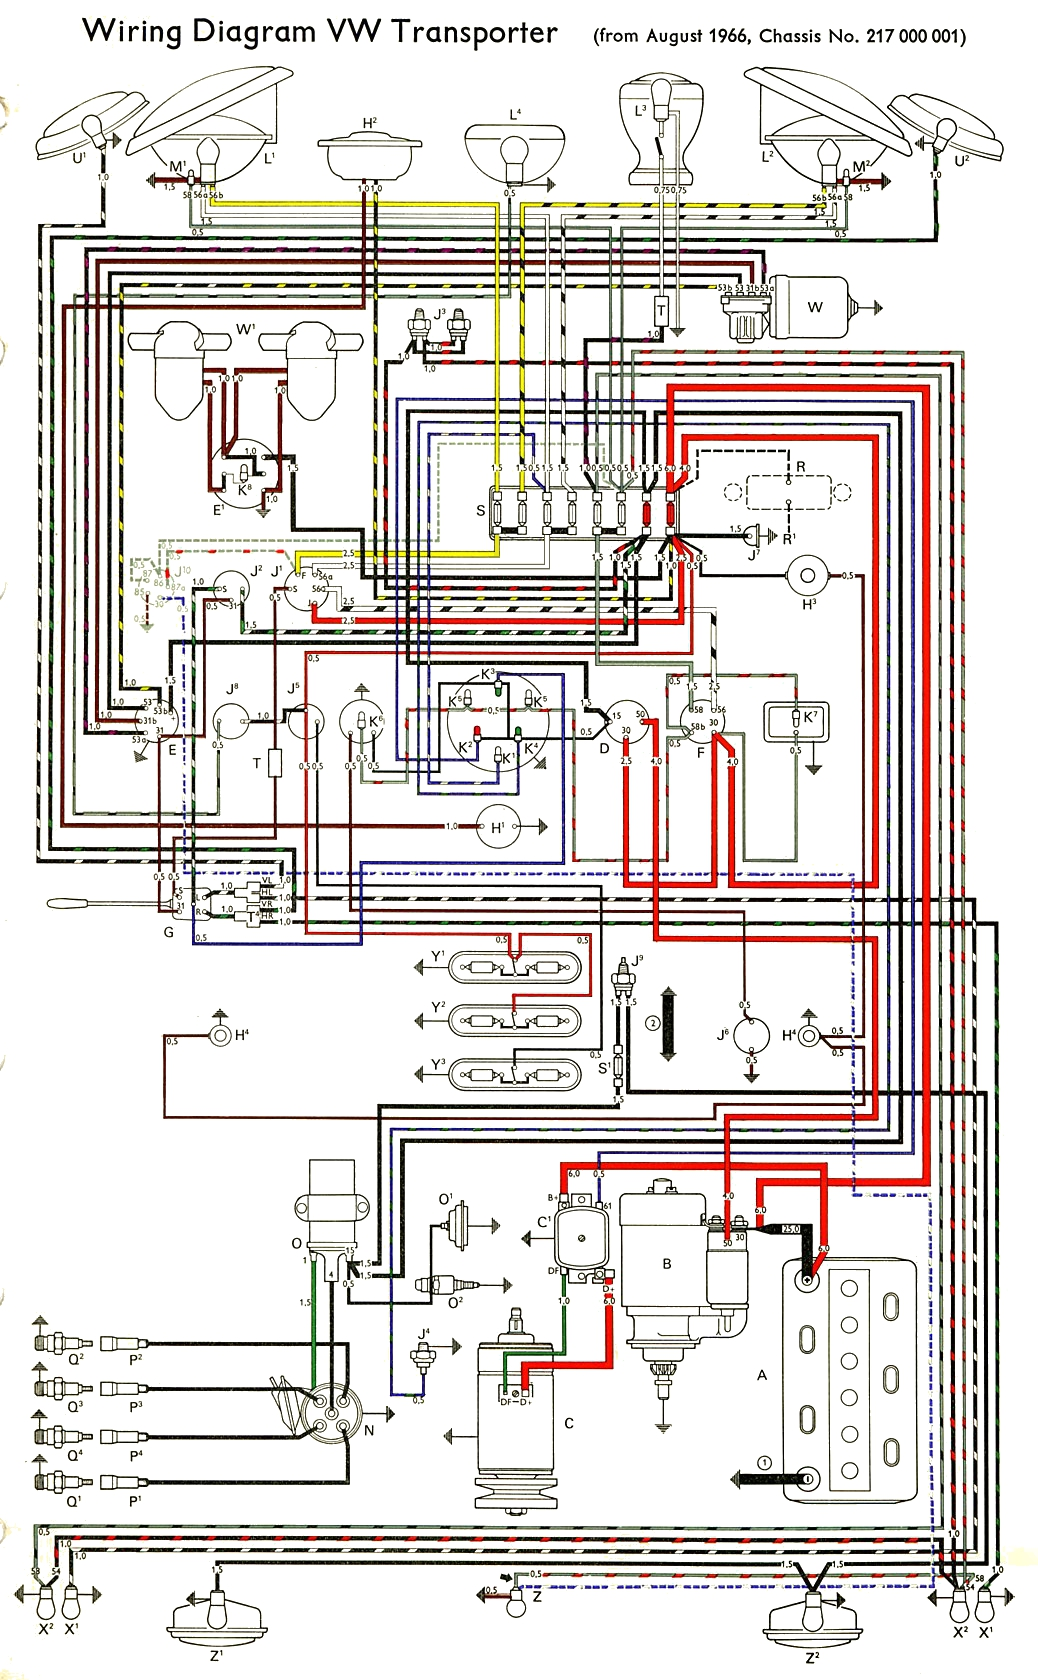 bus_67 thesamba com type 2 wiring diagrams 1973 vw wiring diagram at nearapp.co